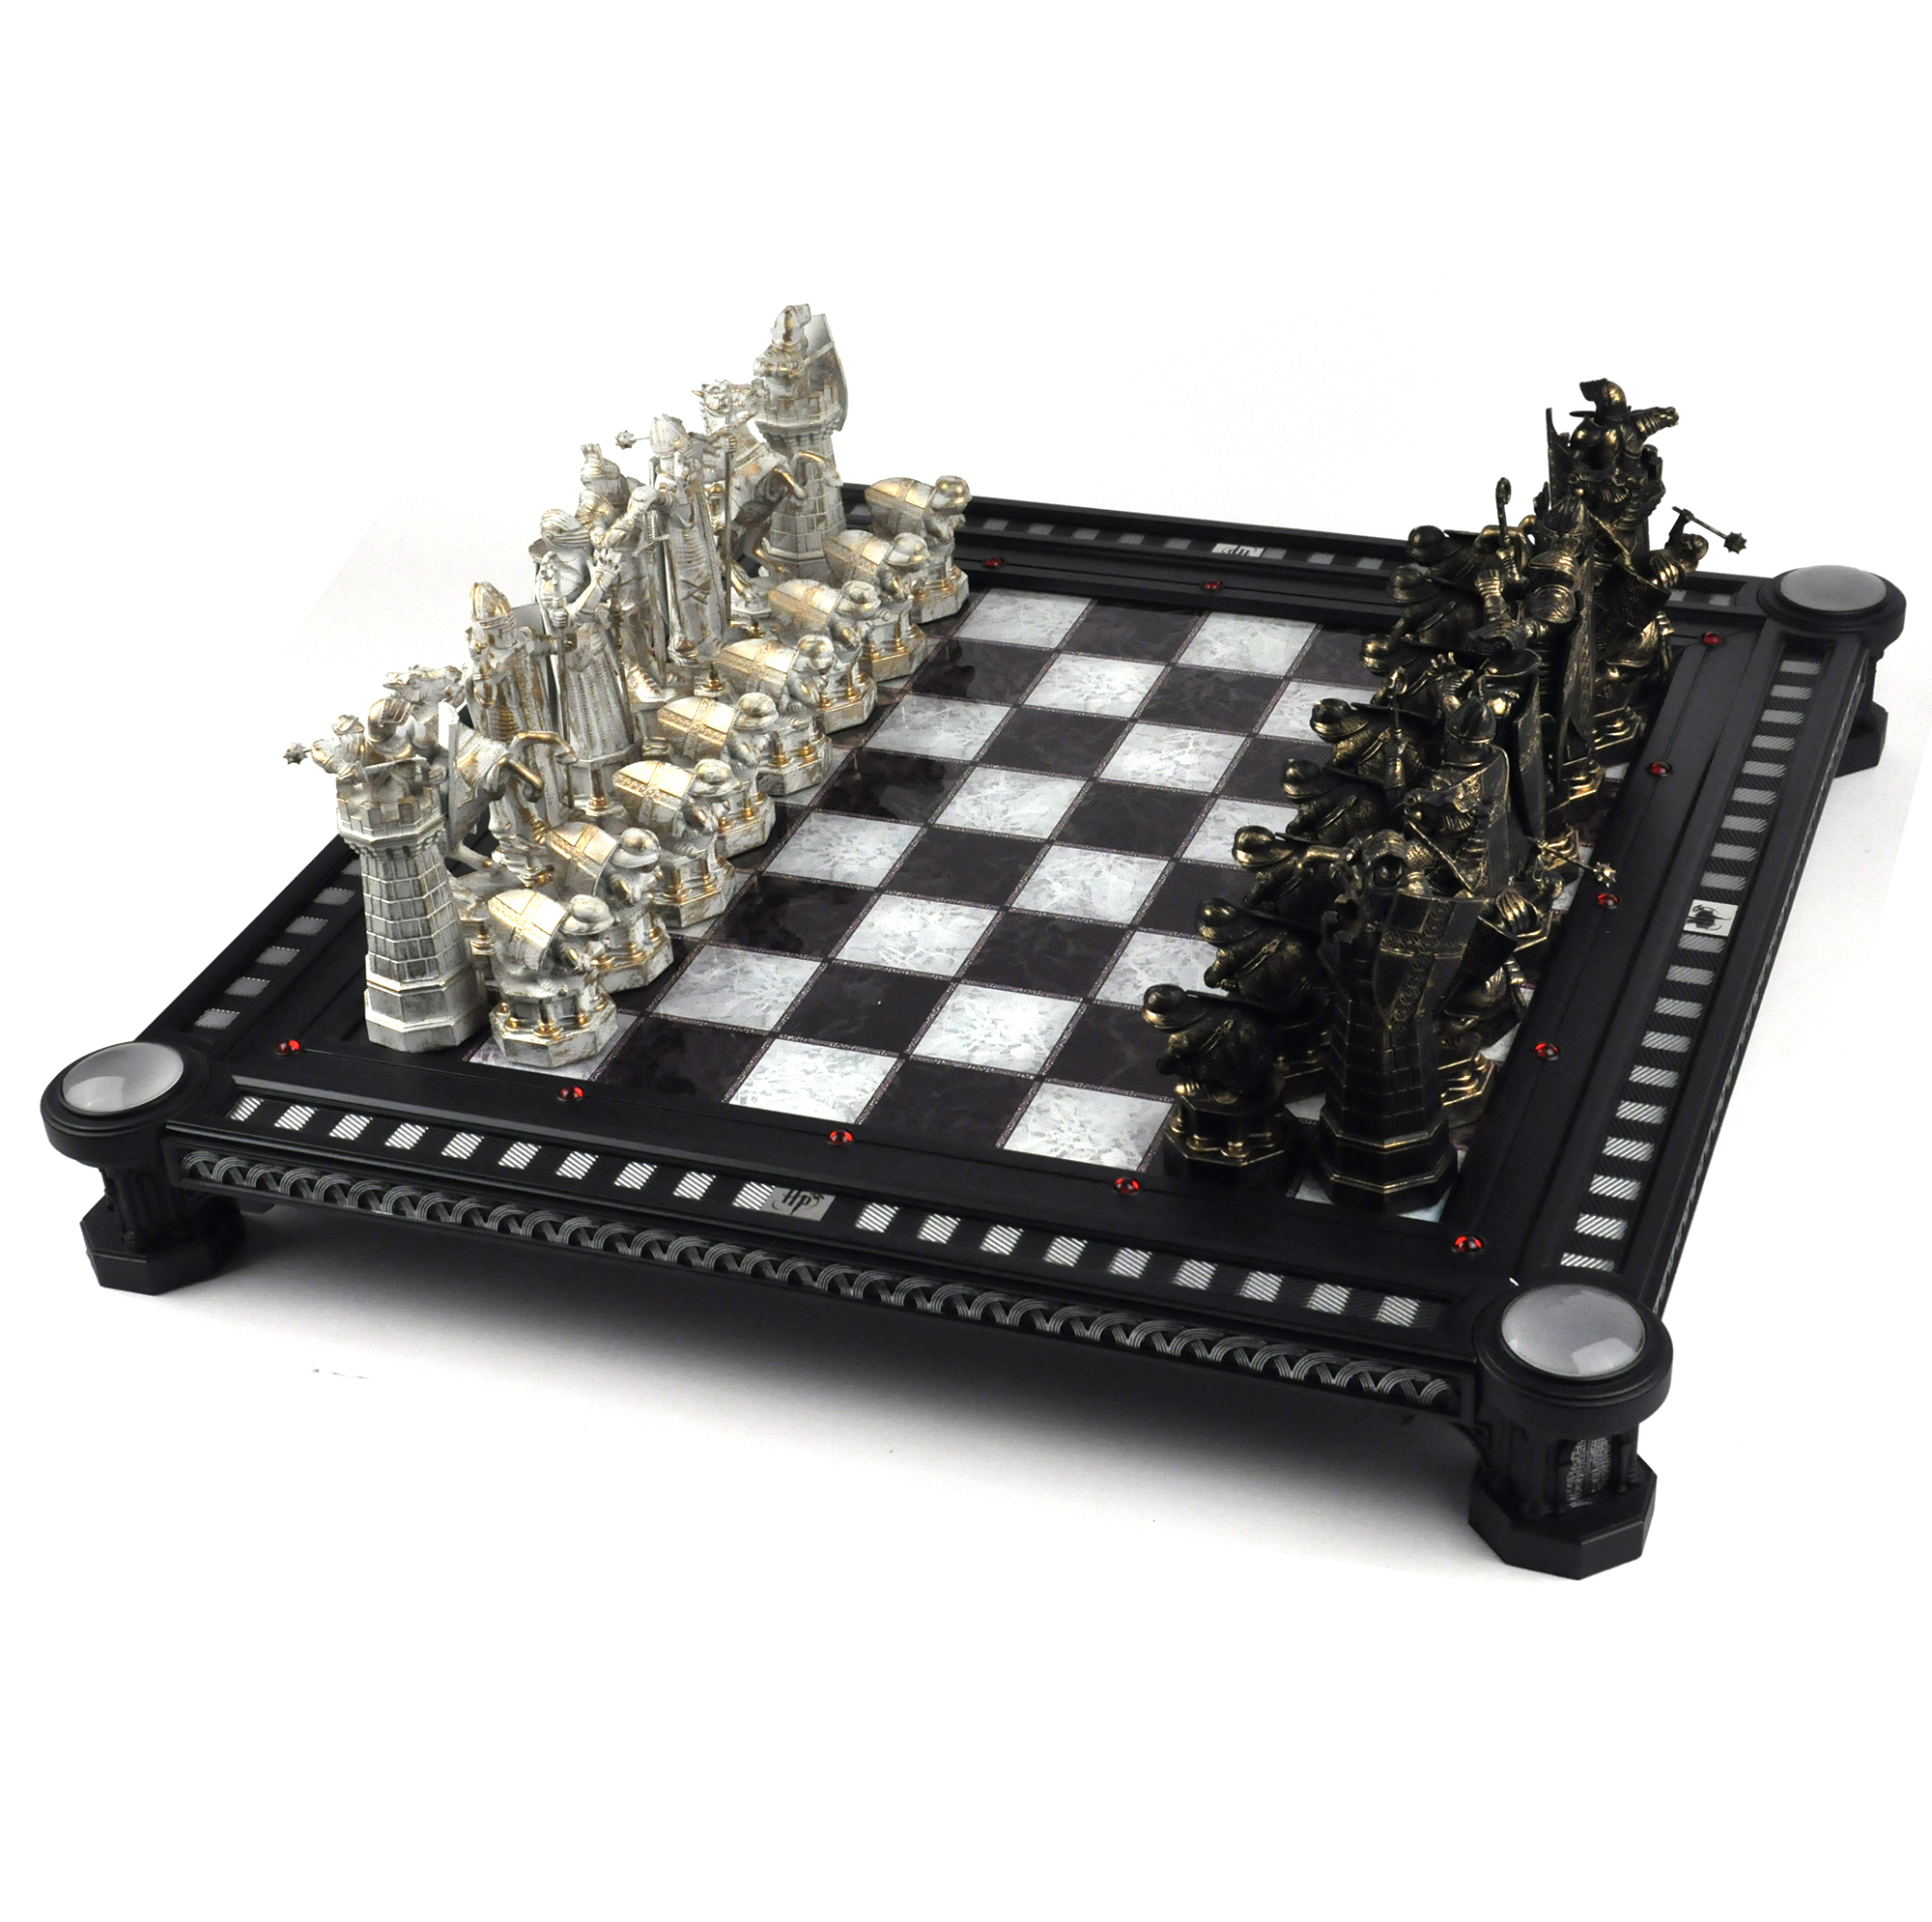 The Wizard 39 S Chess Set From Harry Potter And The